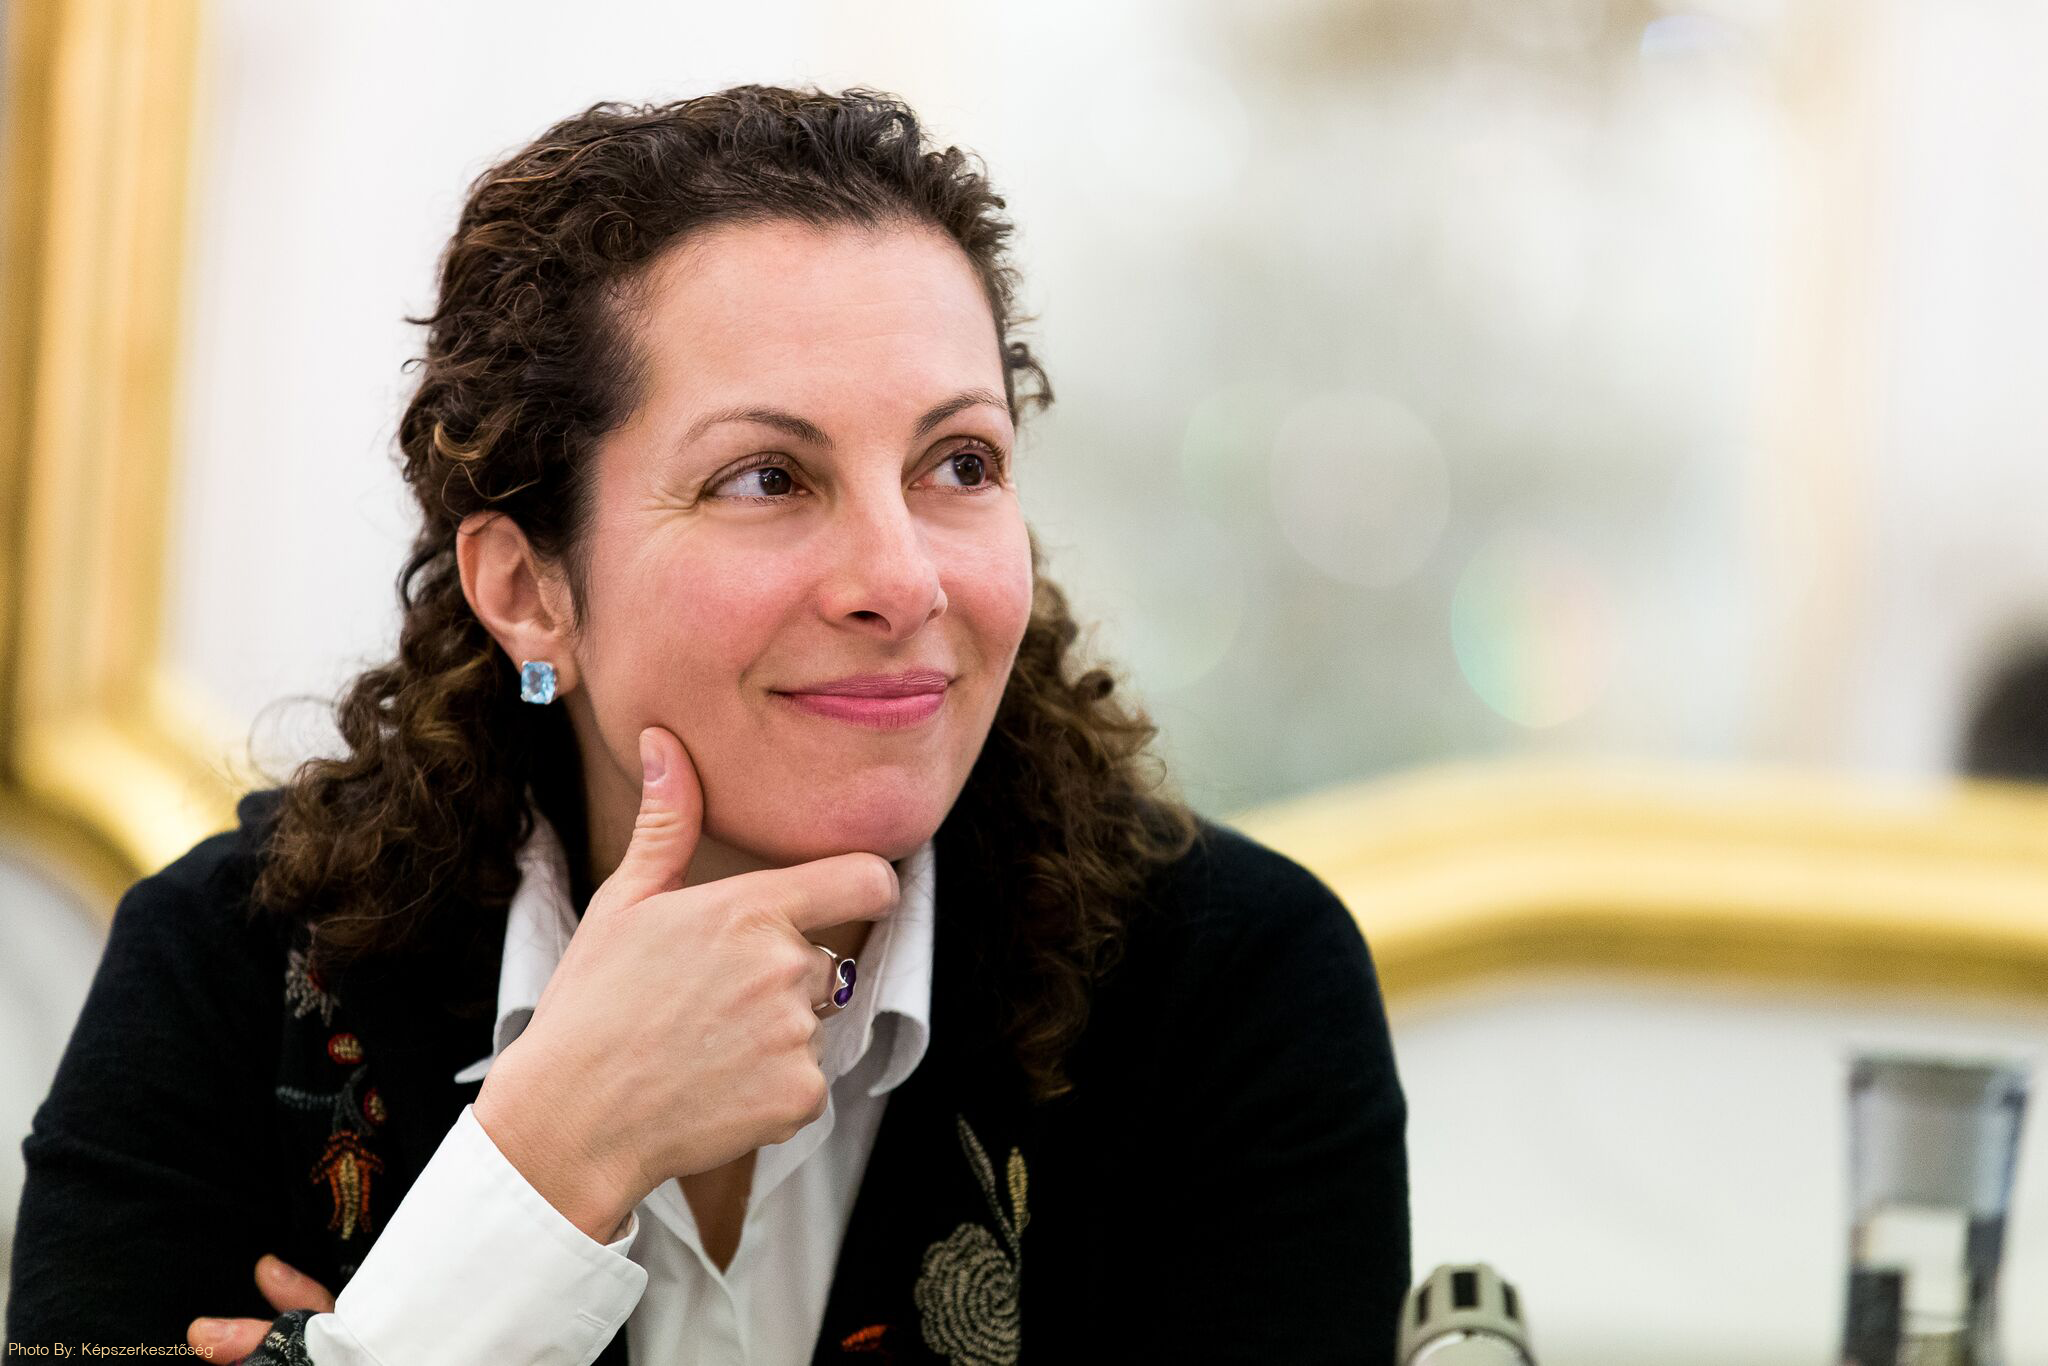 Image of Beth Noveck